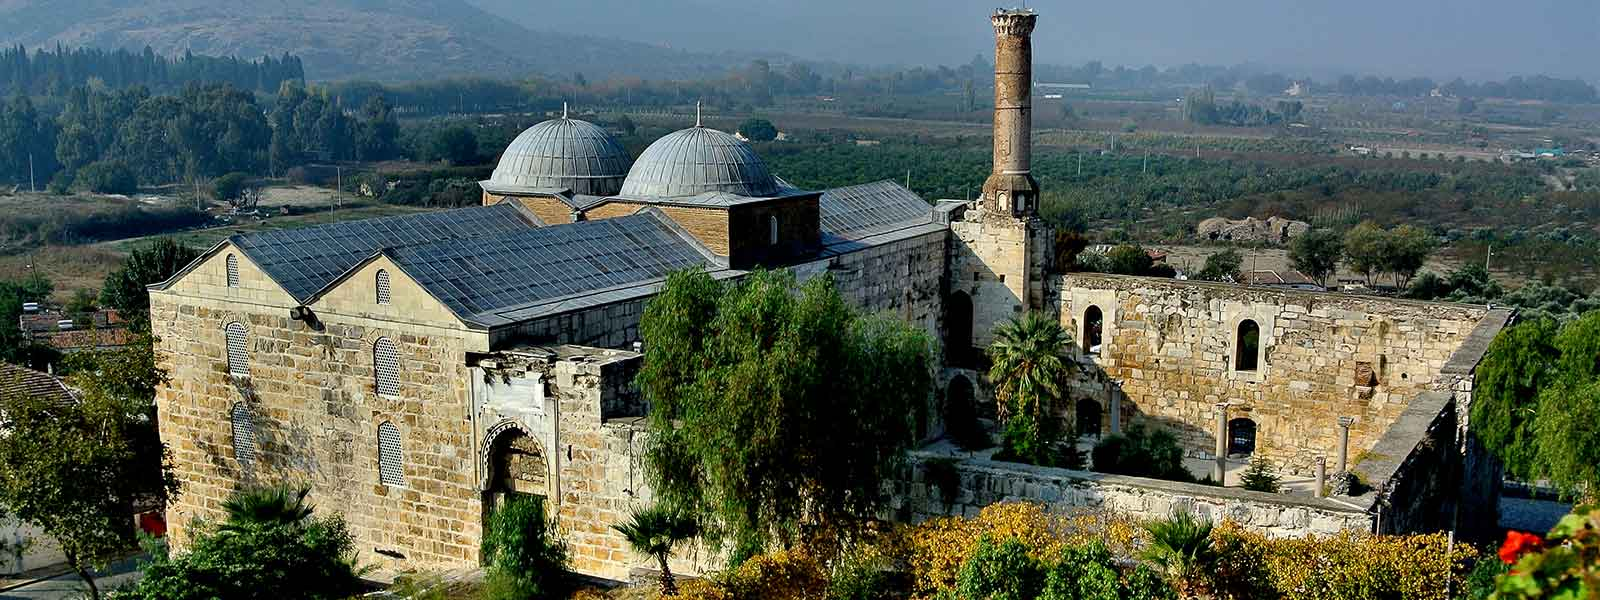 Isabey Mosque Selcuk Turkey